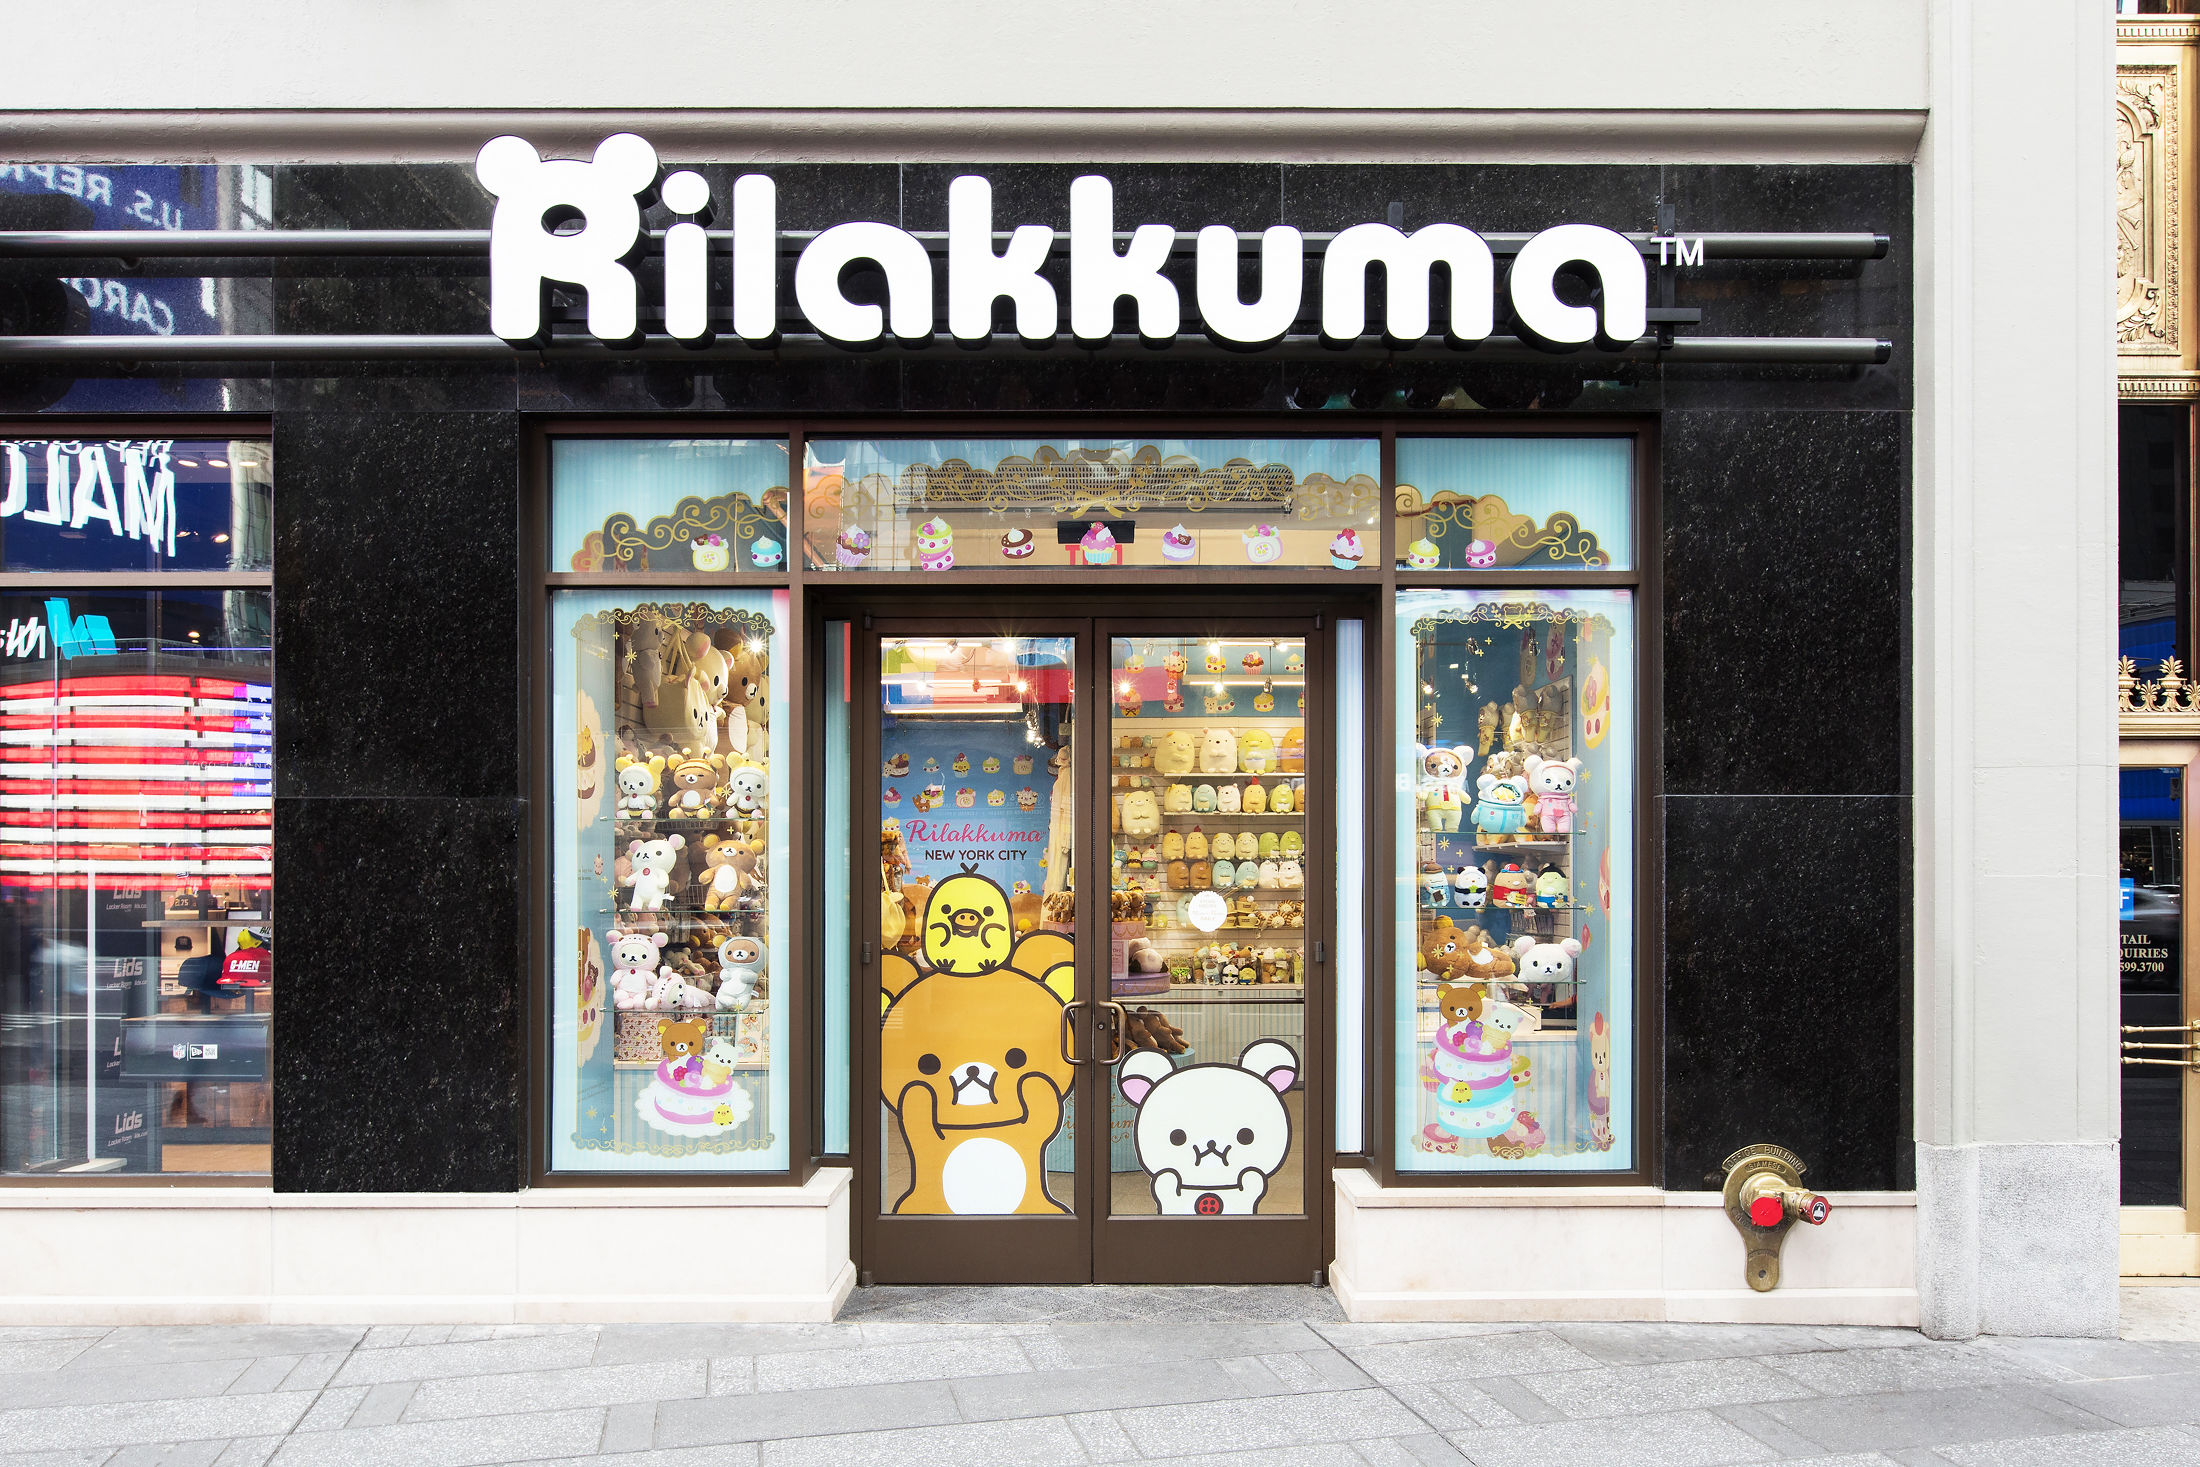 Direct front view of the Rilakkuma pop-up shop in New York with a large Rilakkuma, Korilakkuma, and Kiiroitori decal on the front glass doors and other Rilakkuma sweets decals.